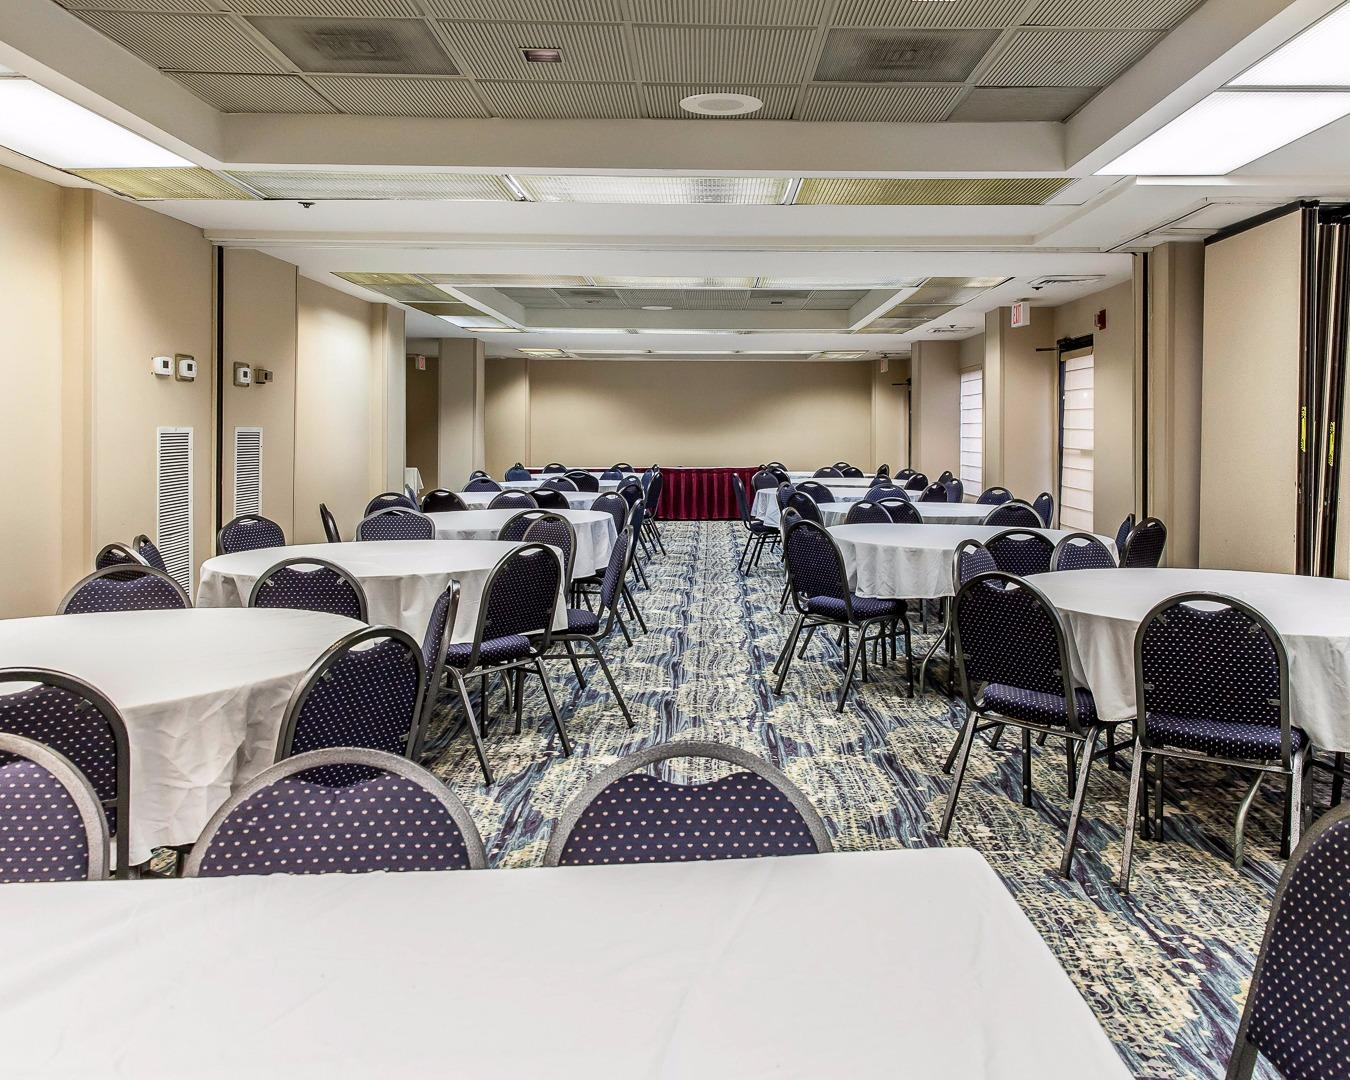 Chester Va Meeting Rooms For  People